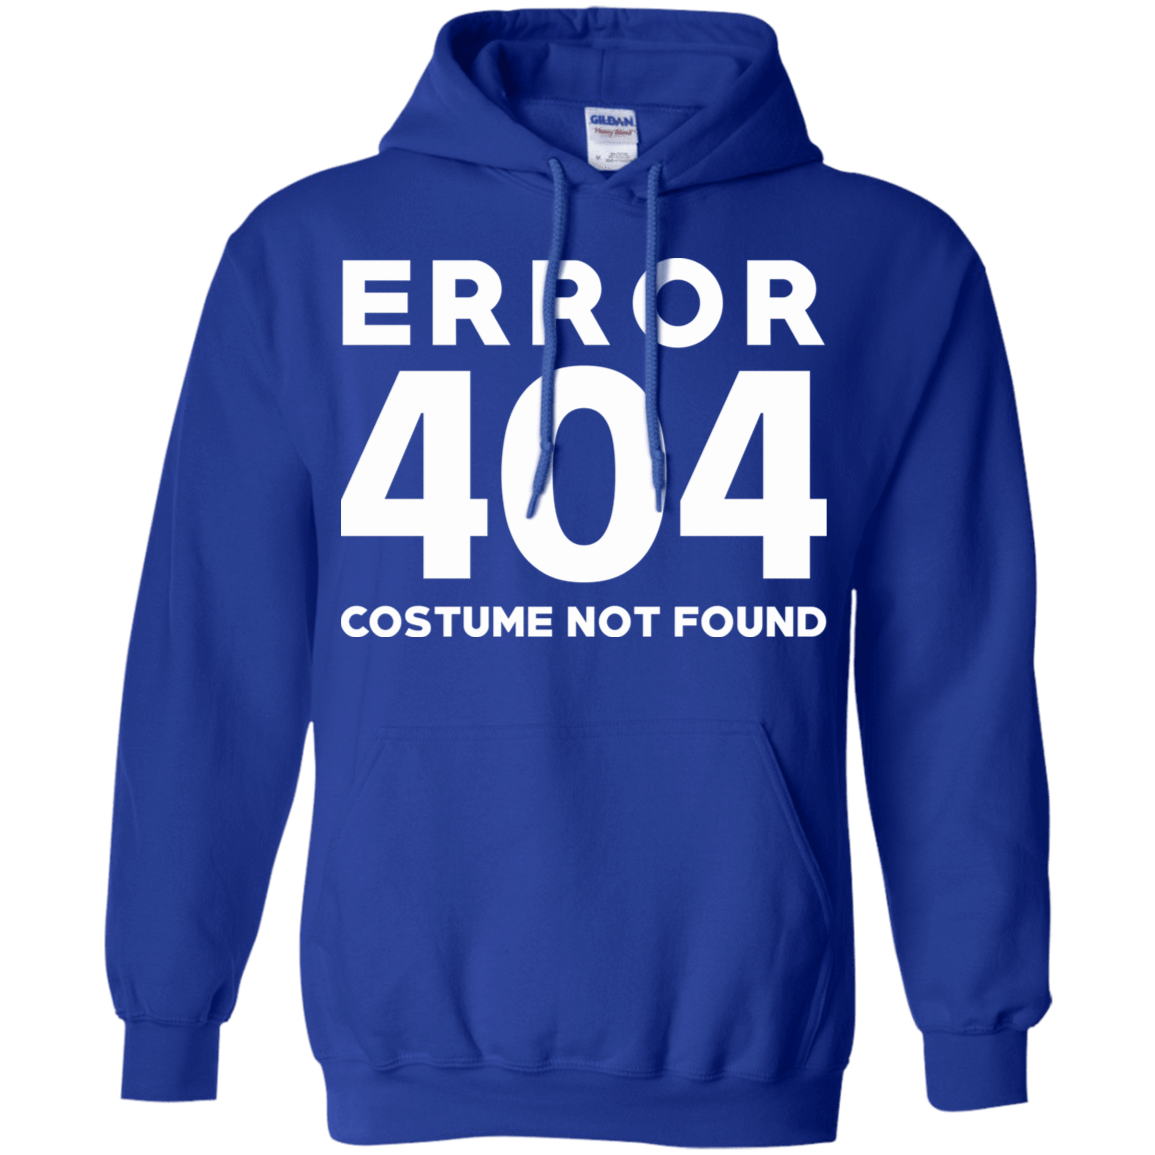 Error 404 Costume Not Found 541-4765-73513403-23175 - Tee Ript